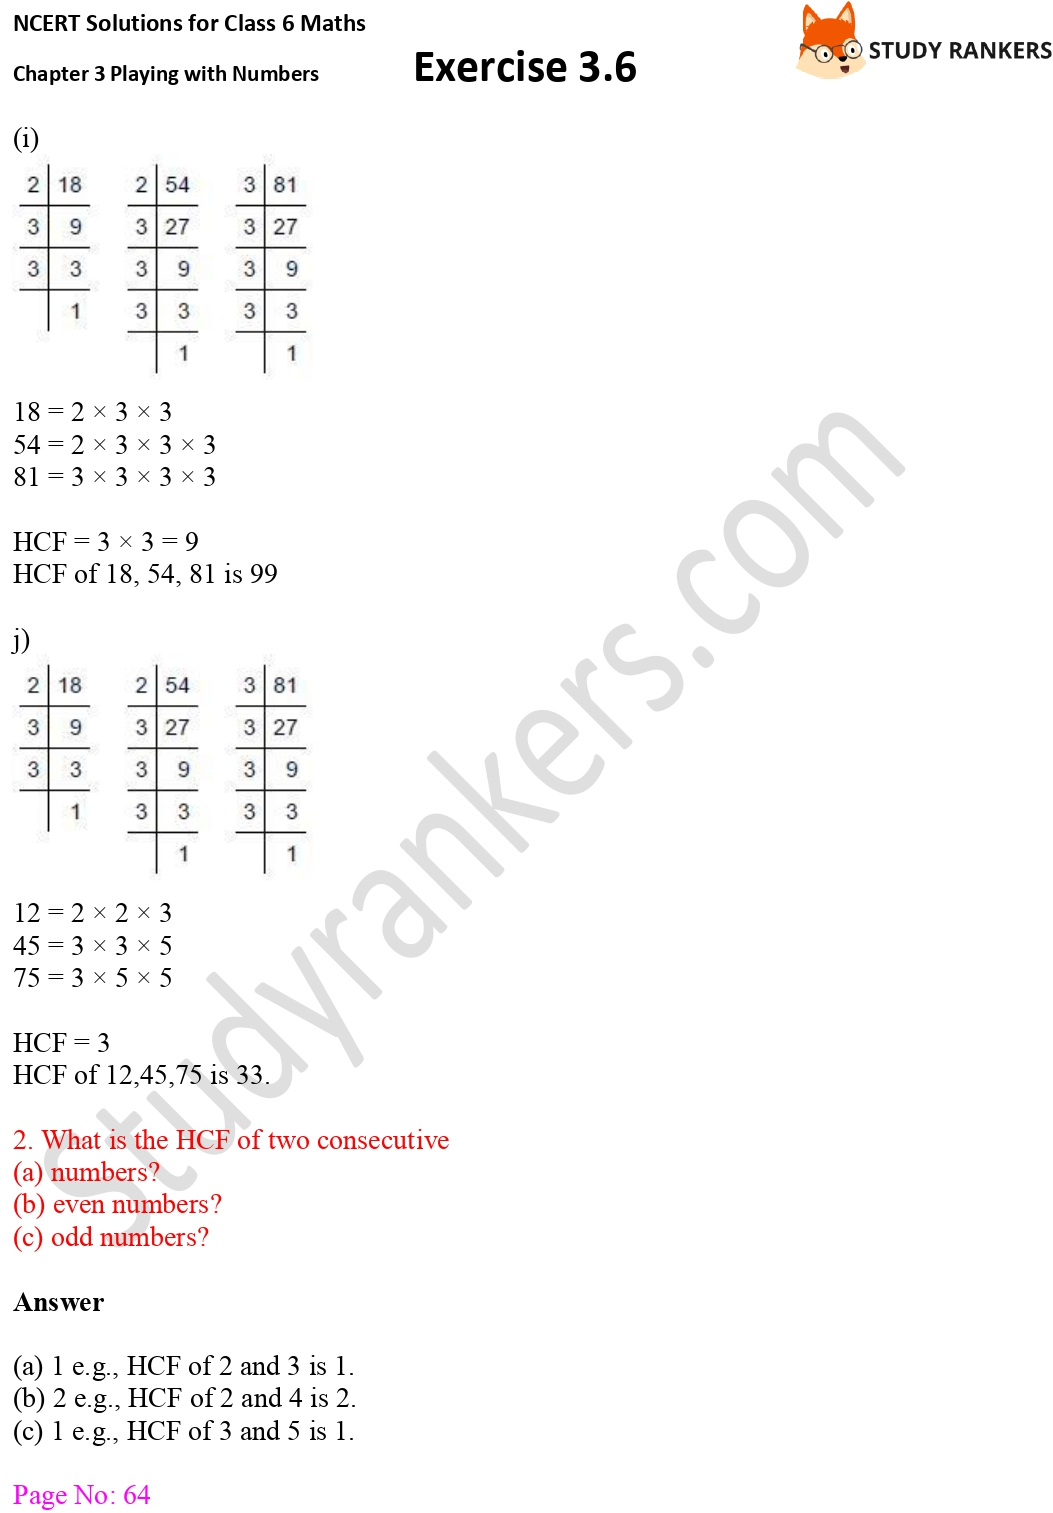 NCERT Solutions for Class 6 Maths Chapter 3 Playing with Numbers Exercise 3.6 Part 4